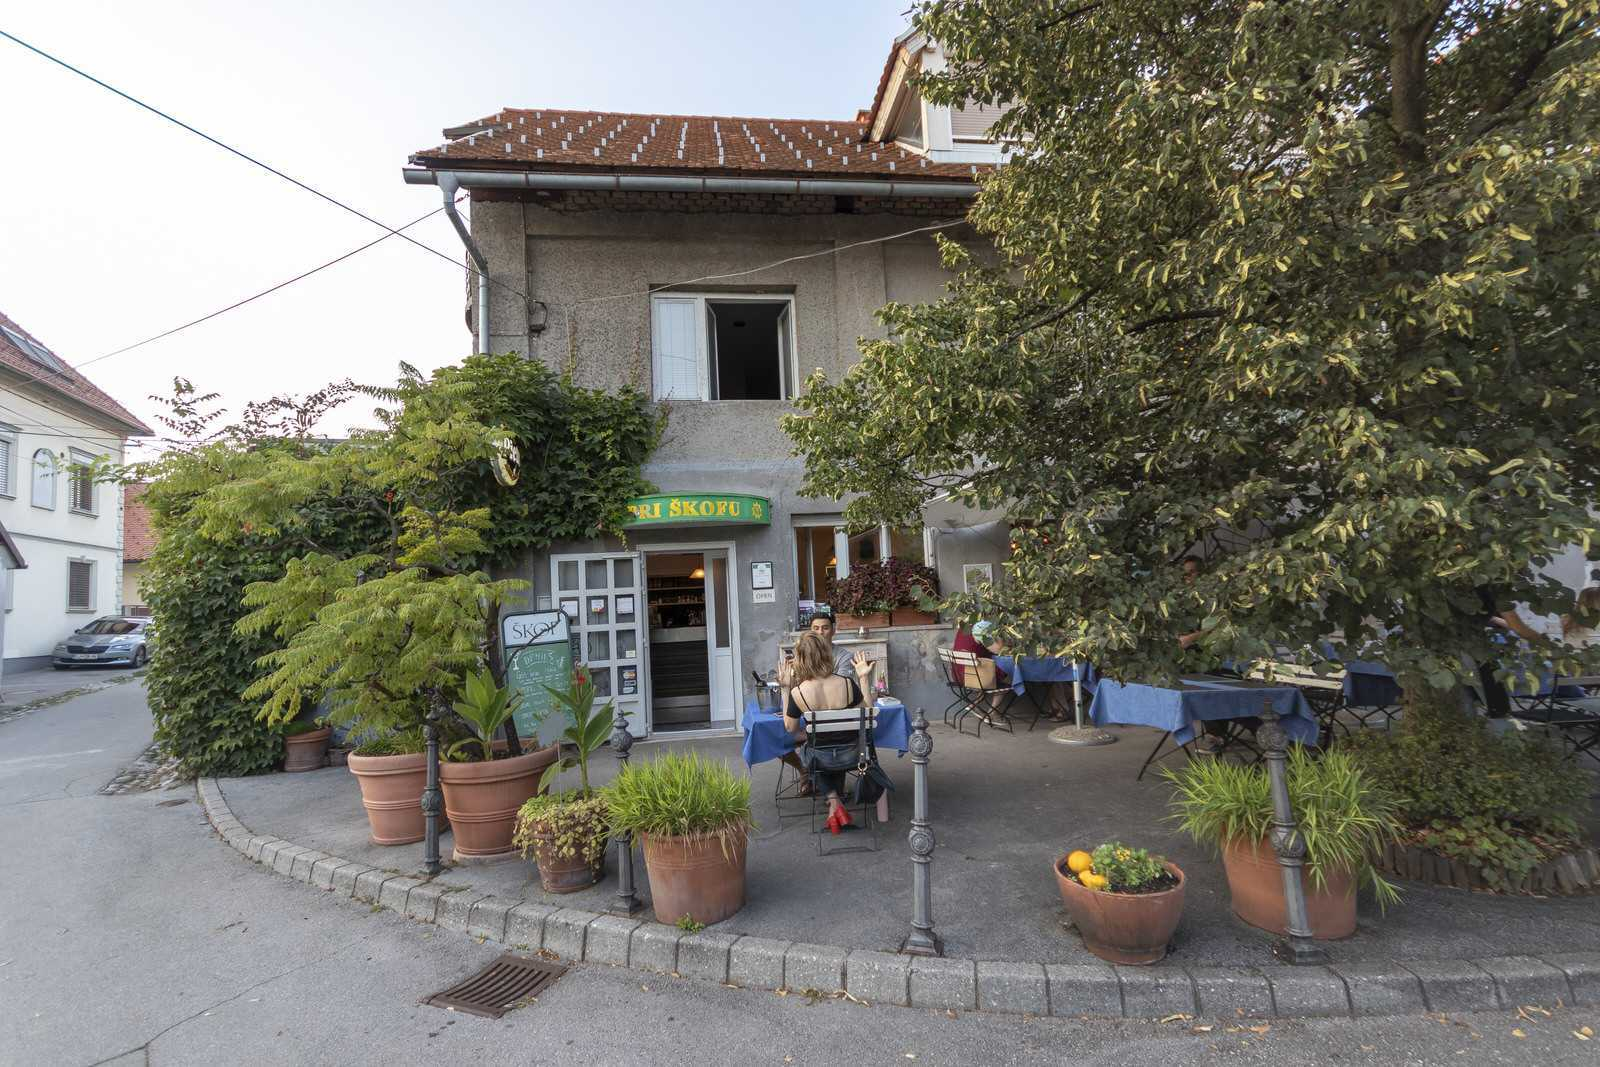 Restaurant Pri Skofu, just a few meters from Ljubljana rental apartment's front door on Gradaska street.